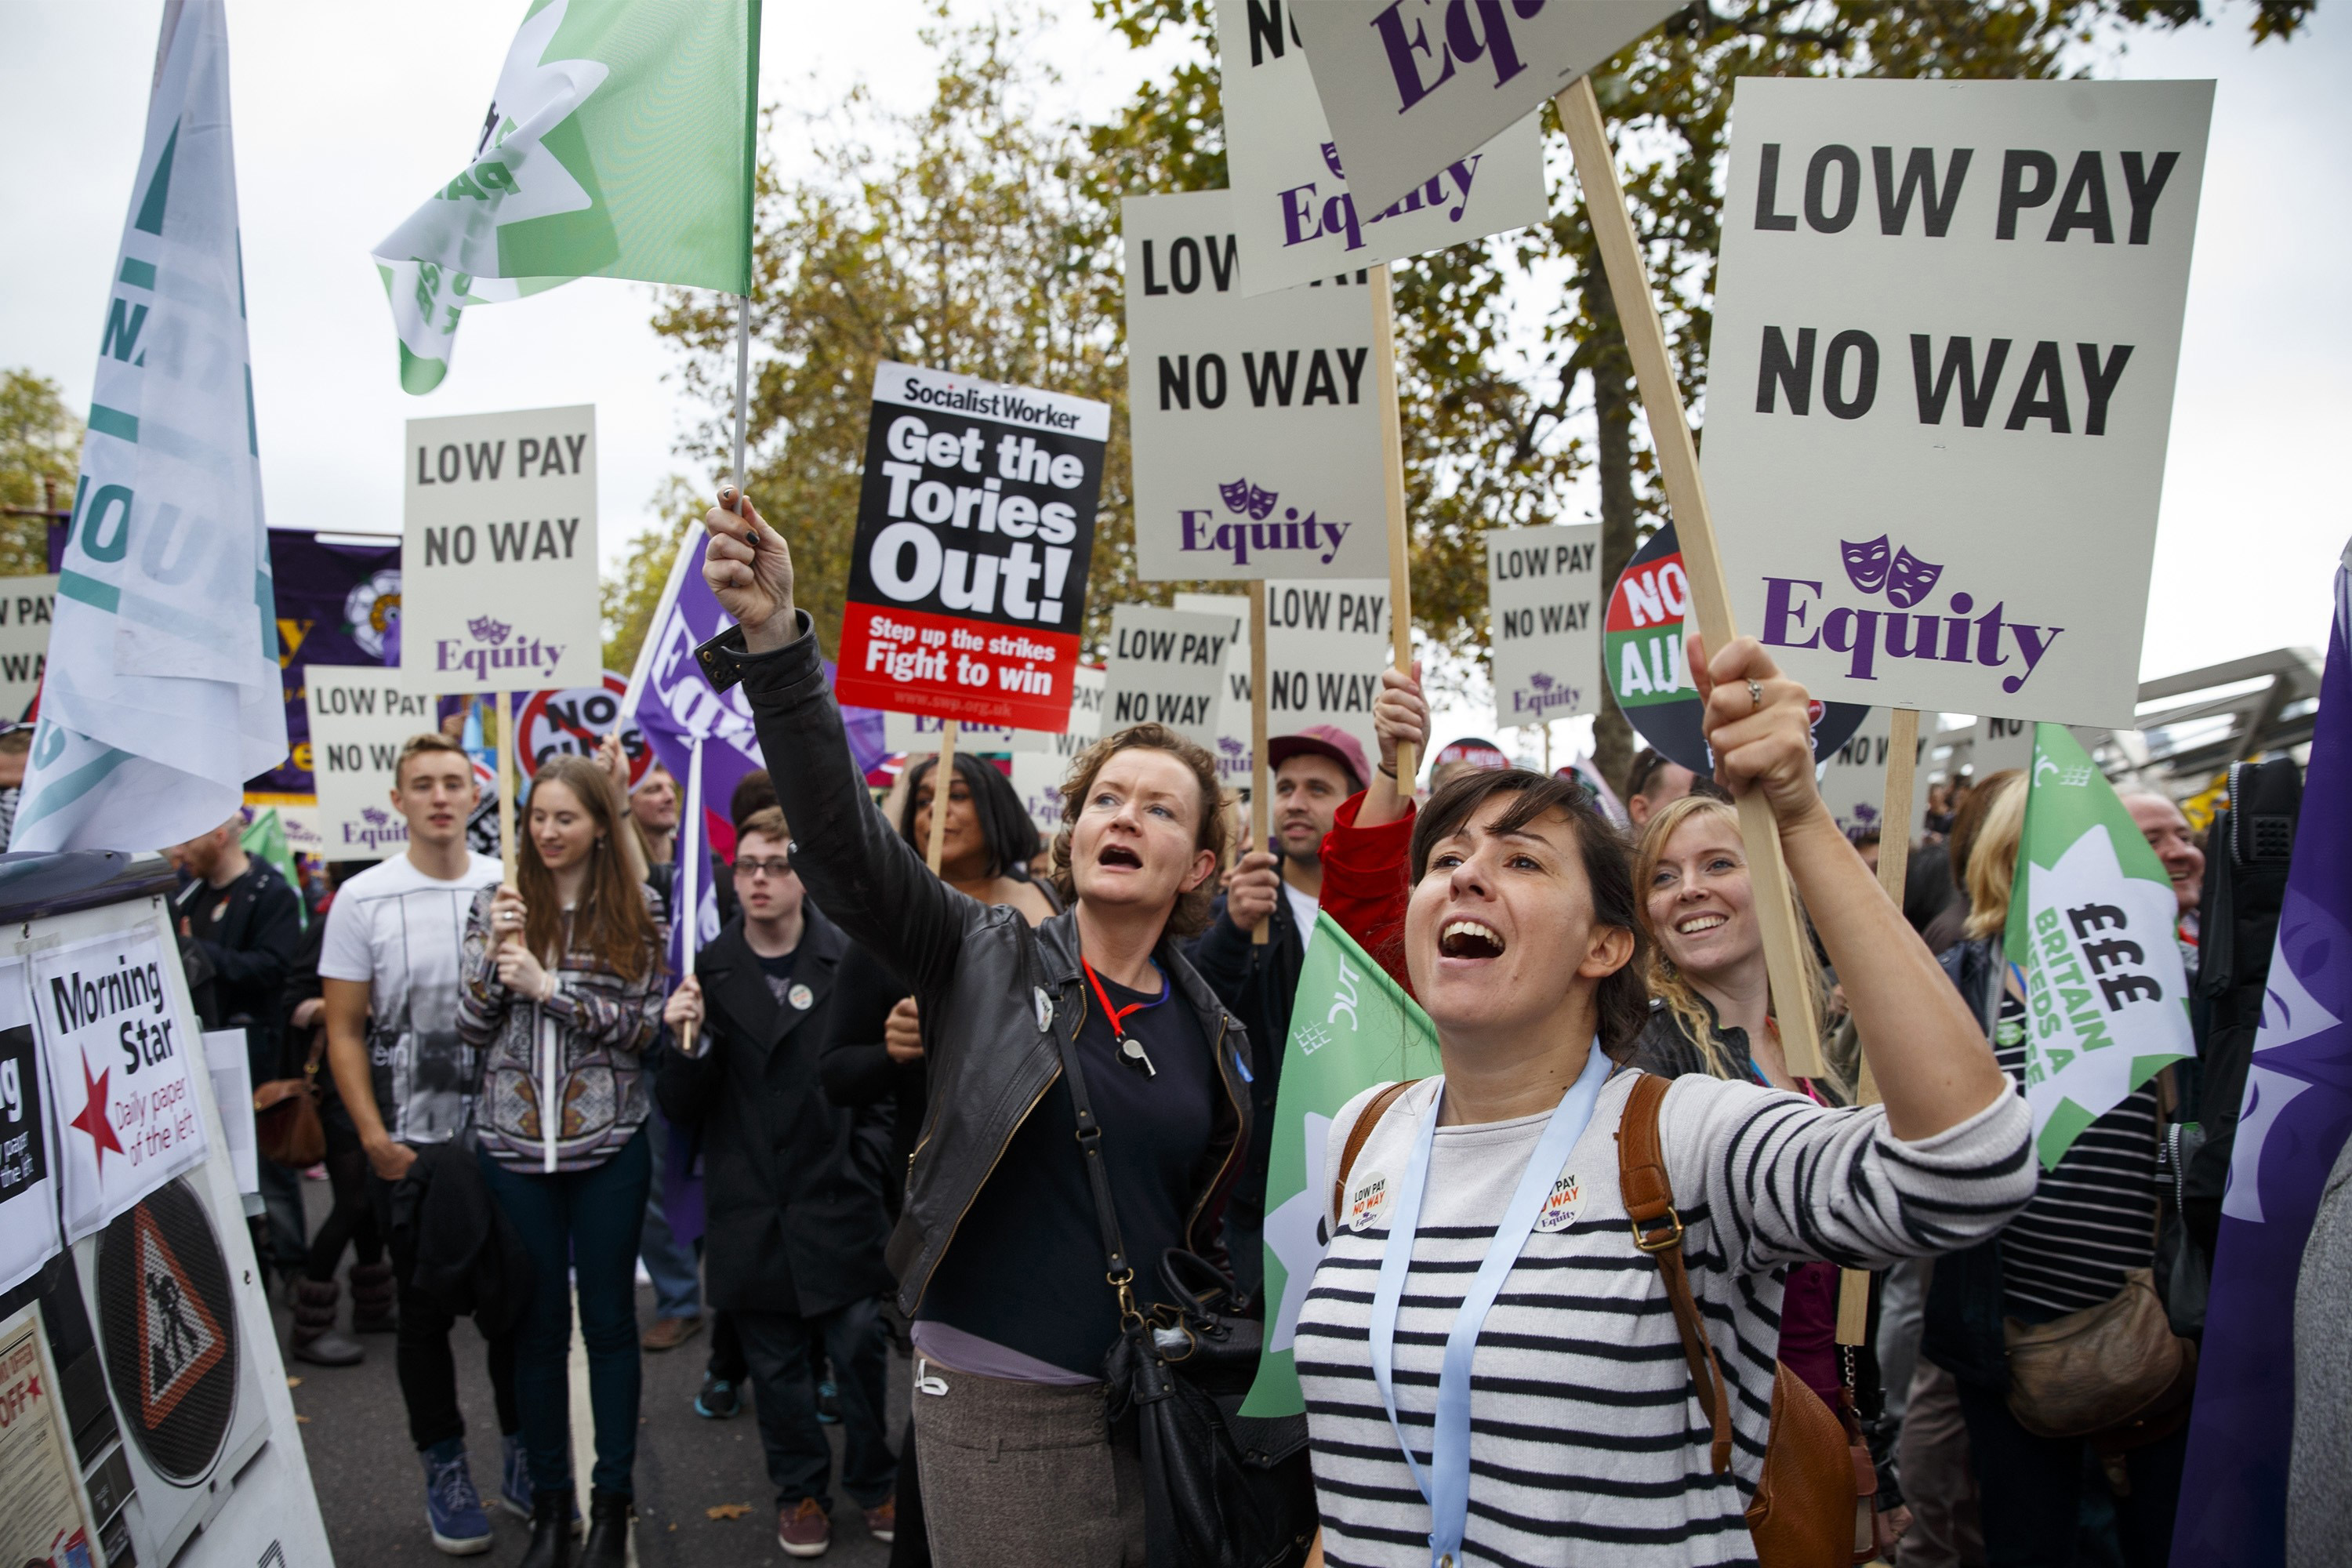 Tens of thousands of workers and public sector workers march during a mass demonstration organized by the Trades Union Congress (TUC) in London to call for an increase in wages.